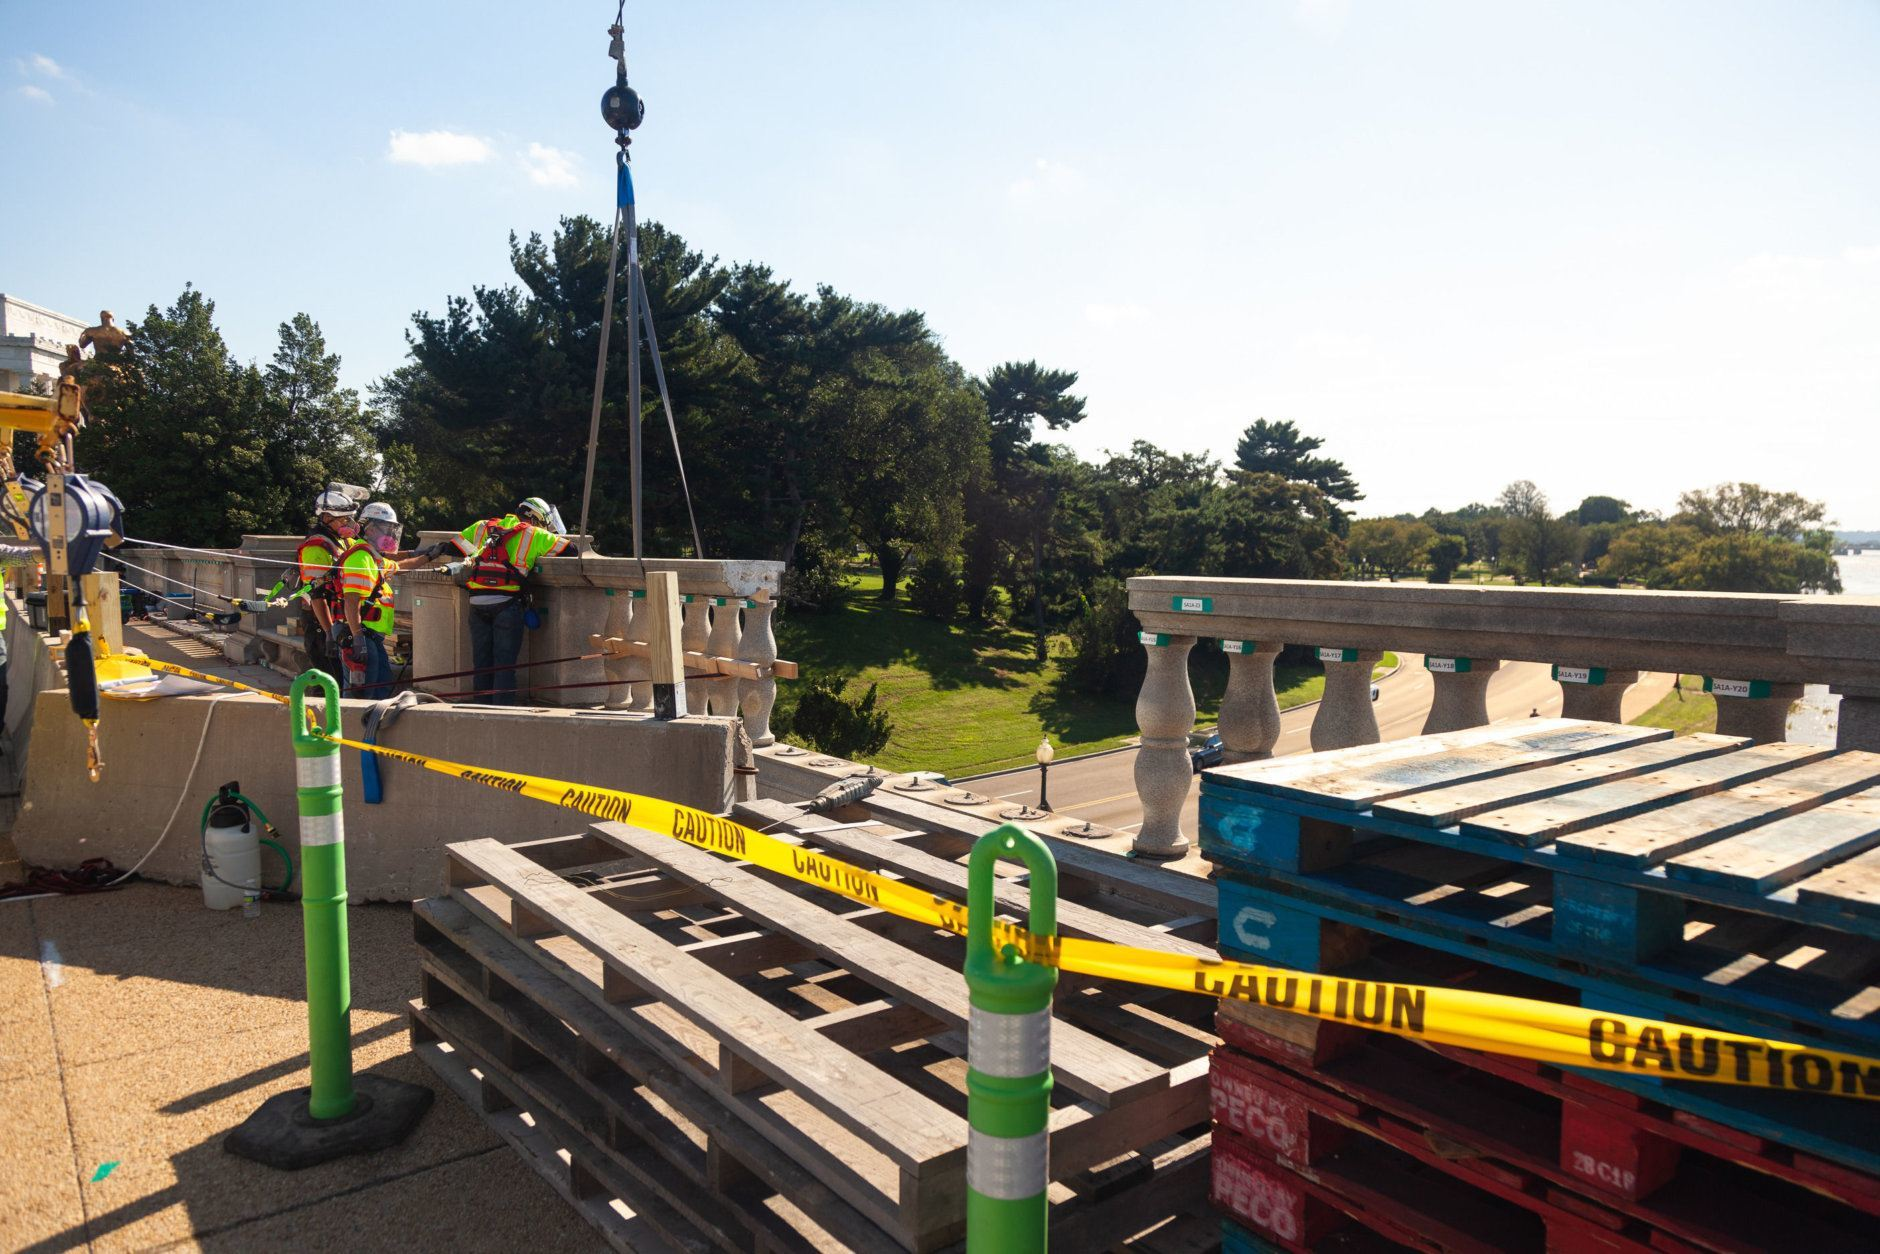 Balustrade Removal on Arlington Memorial Bridge